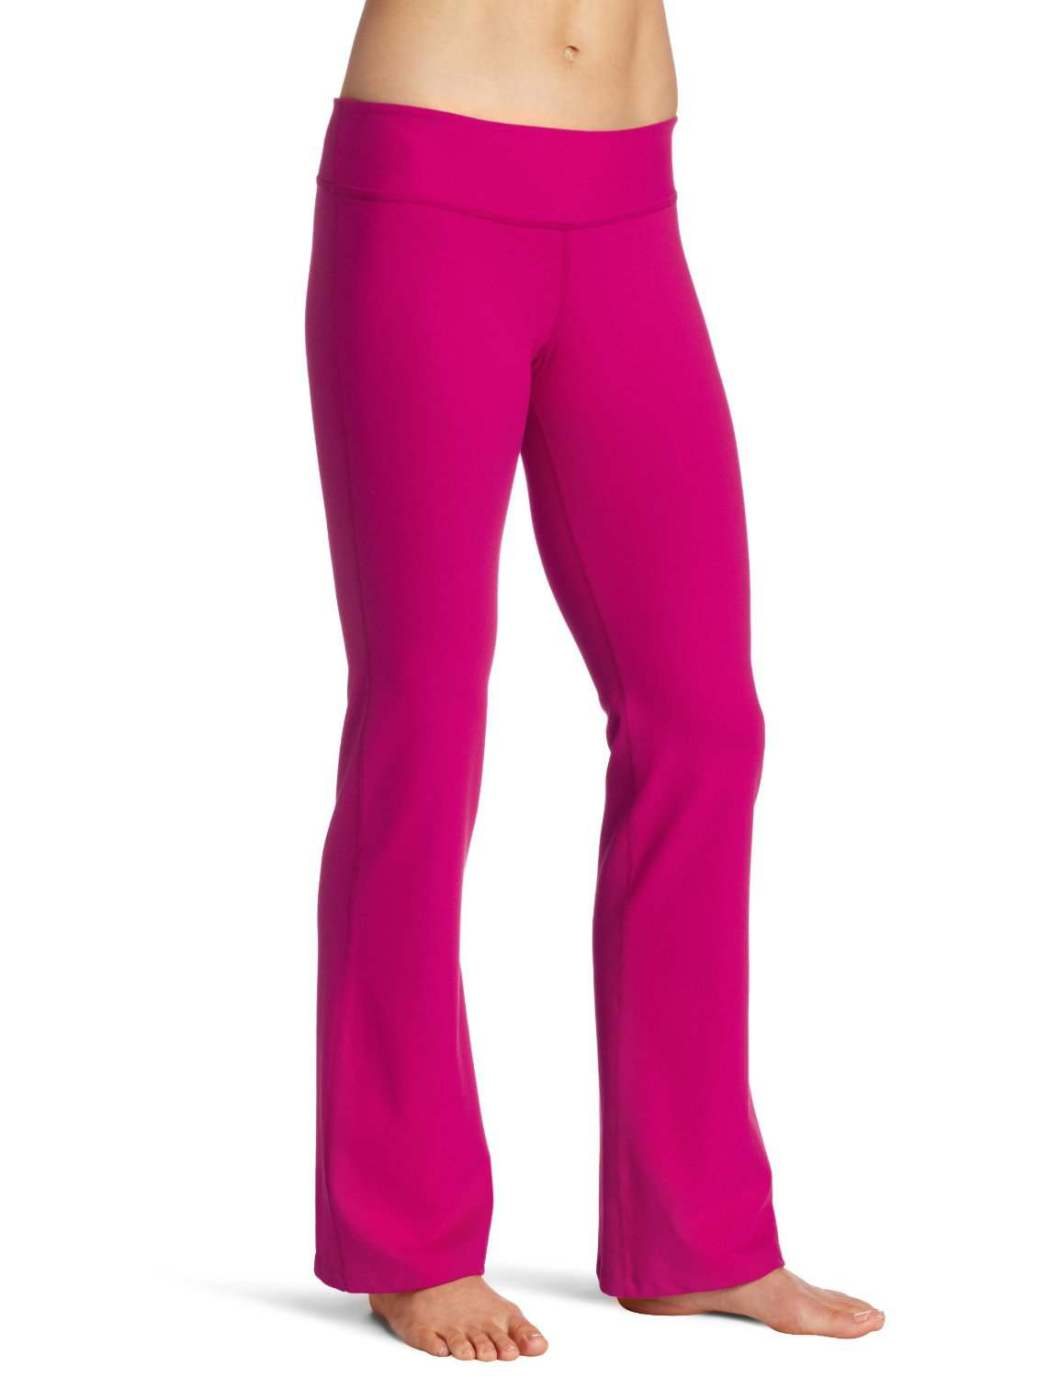 6f56403889 Dahlia Pink Yoga Pants Shoes Accessories And